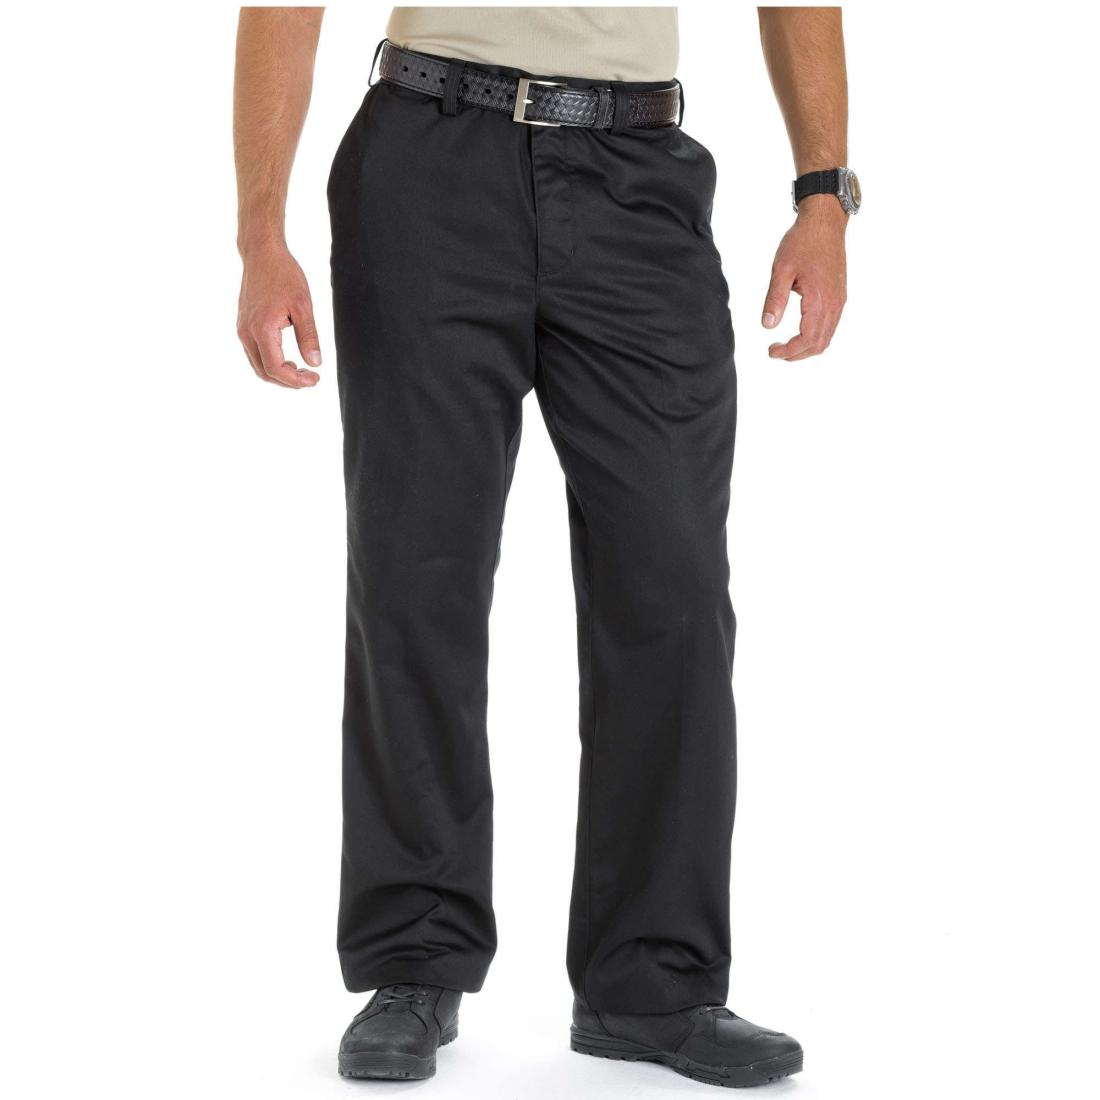 5.11 Tactical 74332 Men's Covert Khaki 2.0 Pant Black